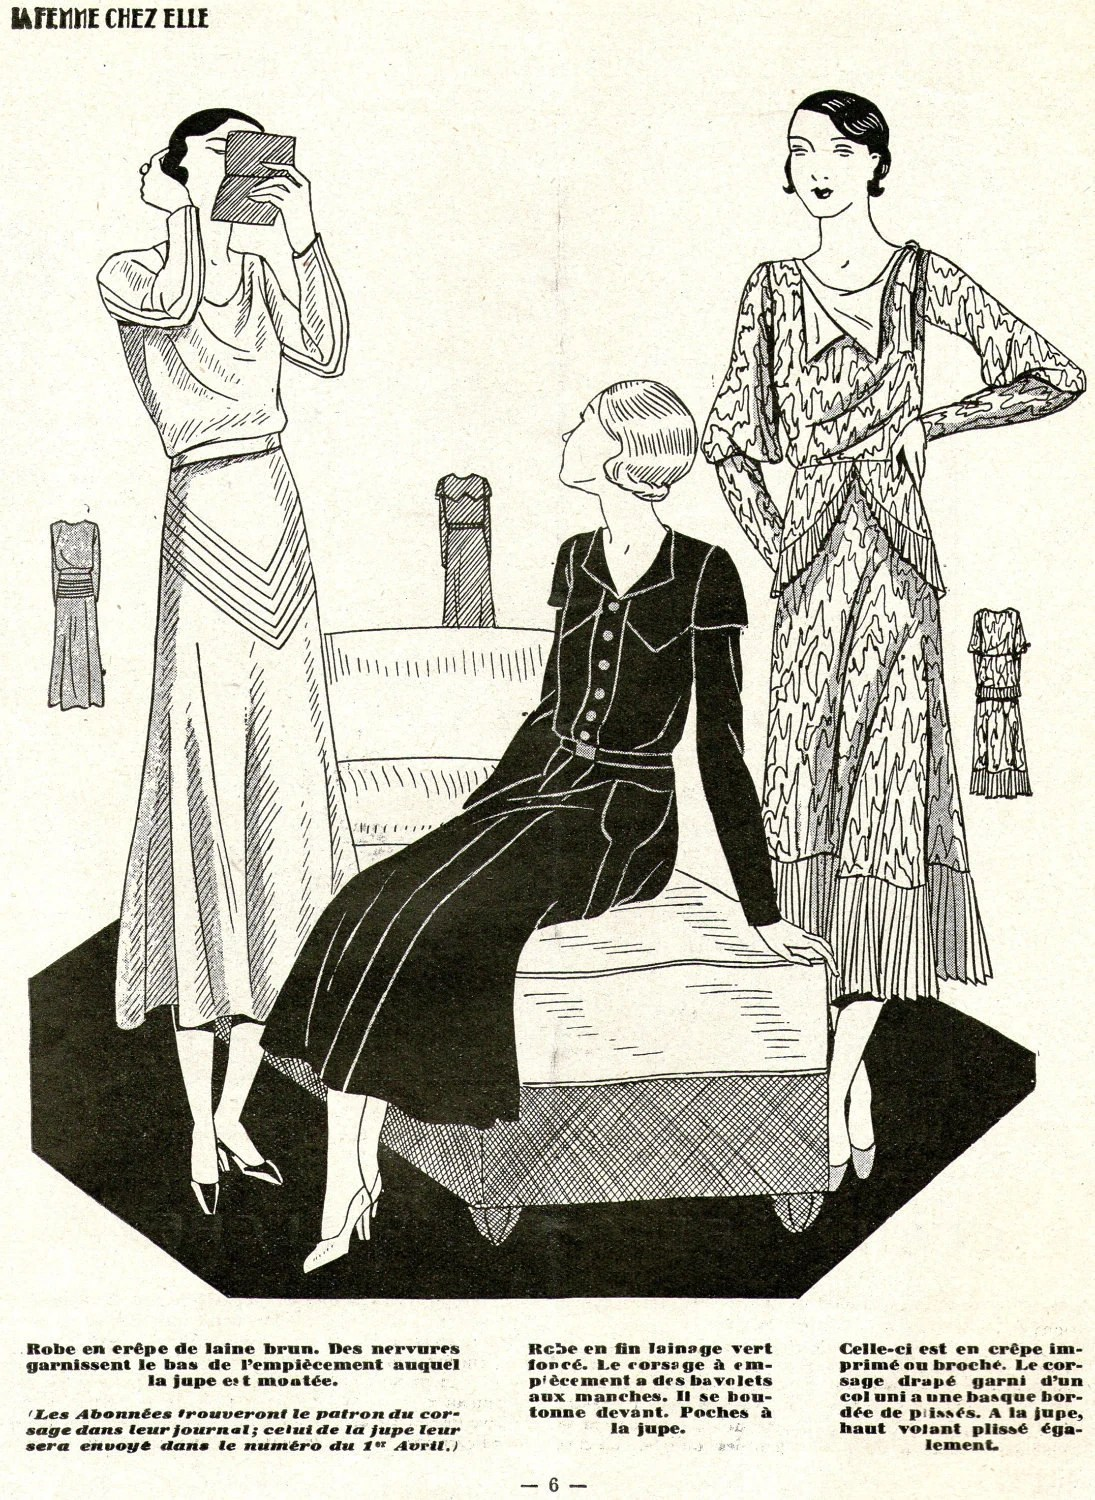 1930s Women's Magazine La Femme Chez Elle 1 March 1932